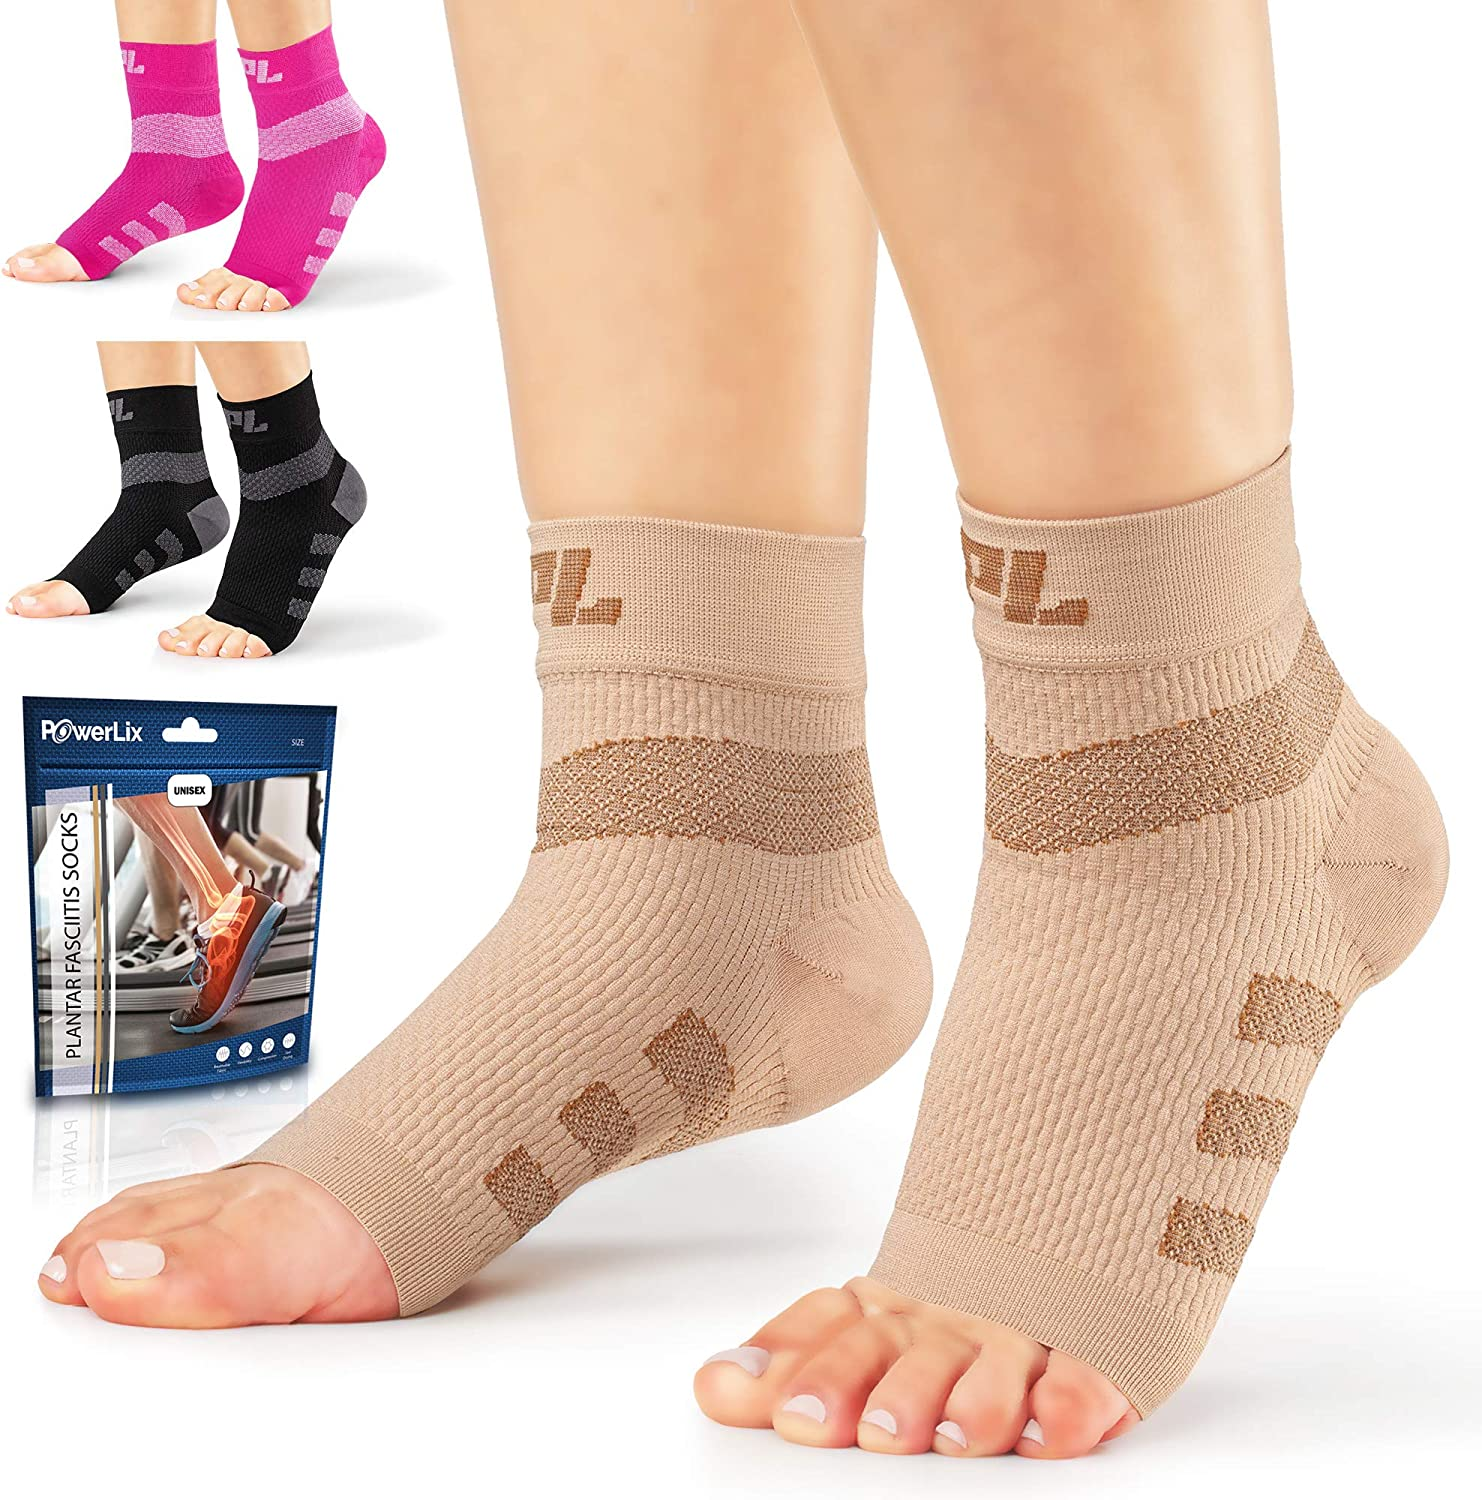 Powerlix Nano Socks for Neuropathy (Pair) for Women & Men, Ankle Brace Support, Plantar fasciitis socks, Toeless Compression Socks & Foot Sleeve for Arch and Heel Pain Relief, Treatment & Everyday Use